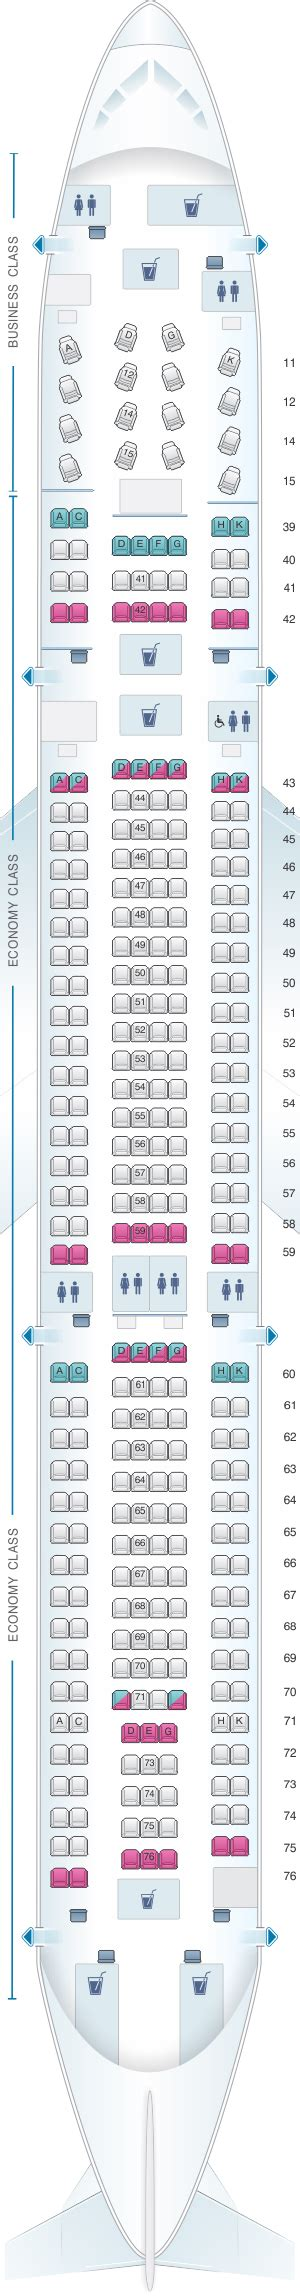 Seat Map Cathay Pacific Airways Airbus A330 300 (33P